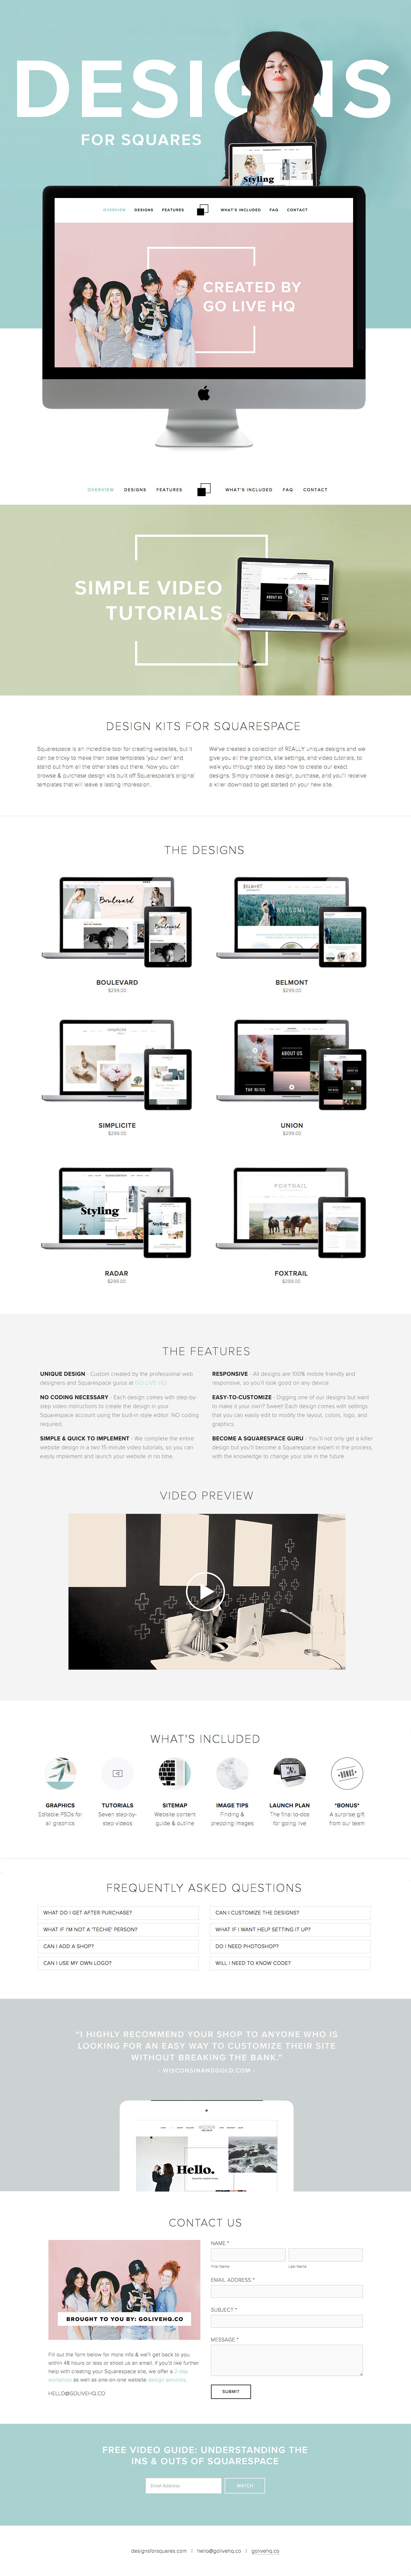 squarespace website themes by golivehq.co